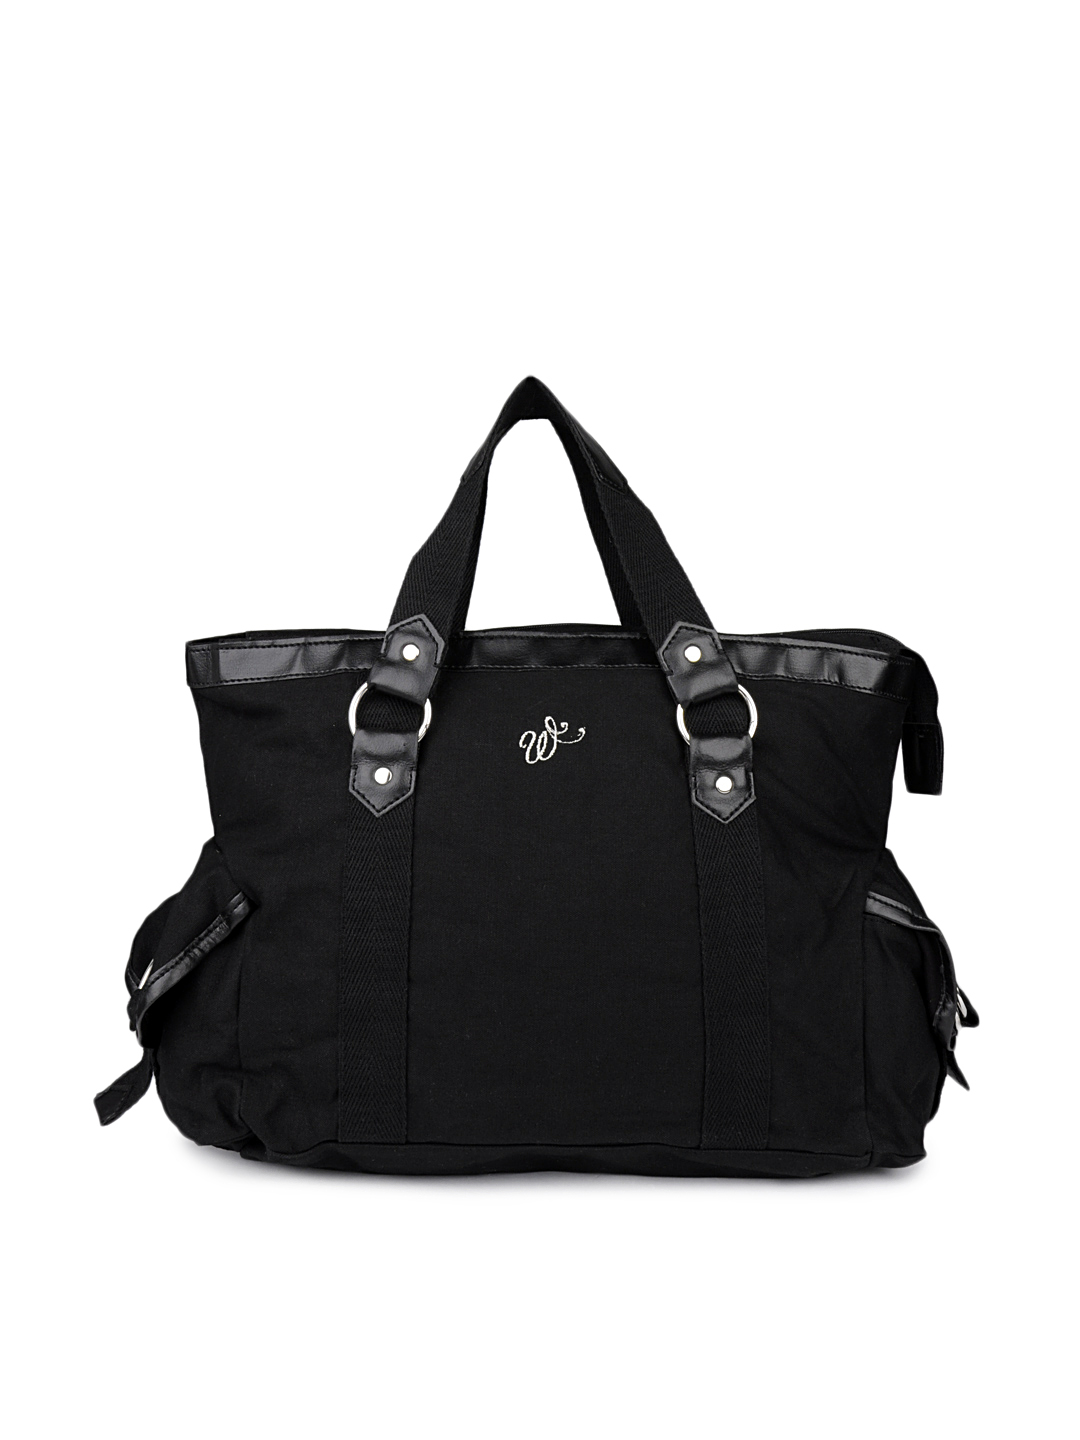 Wrangler Women Black Canvas Handbag